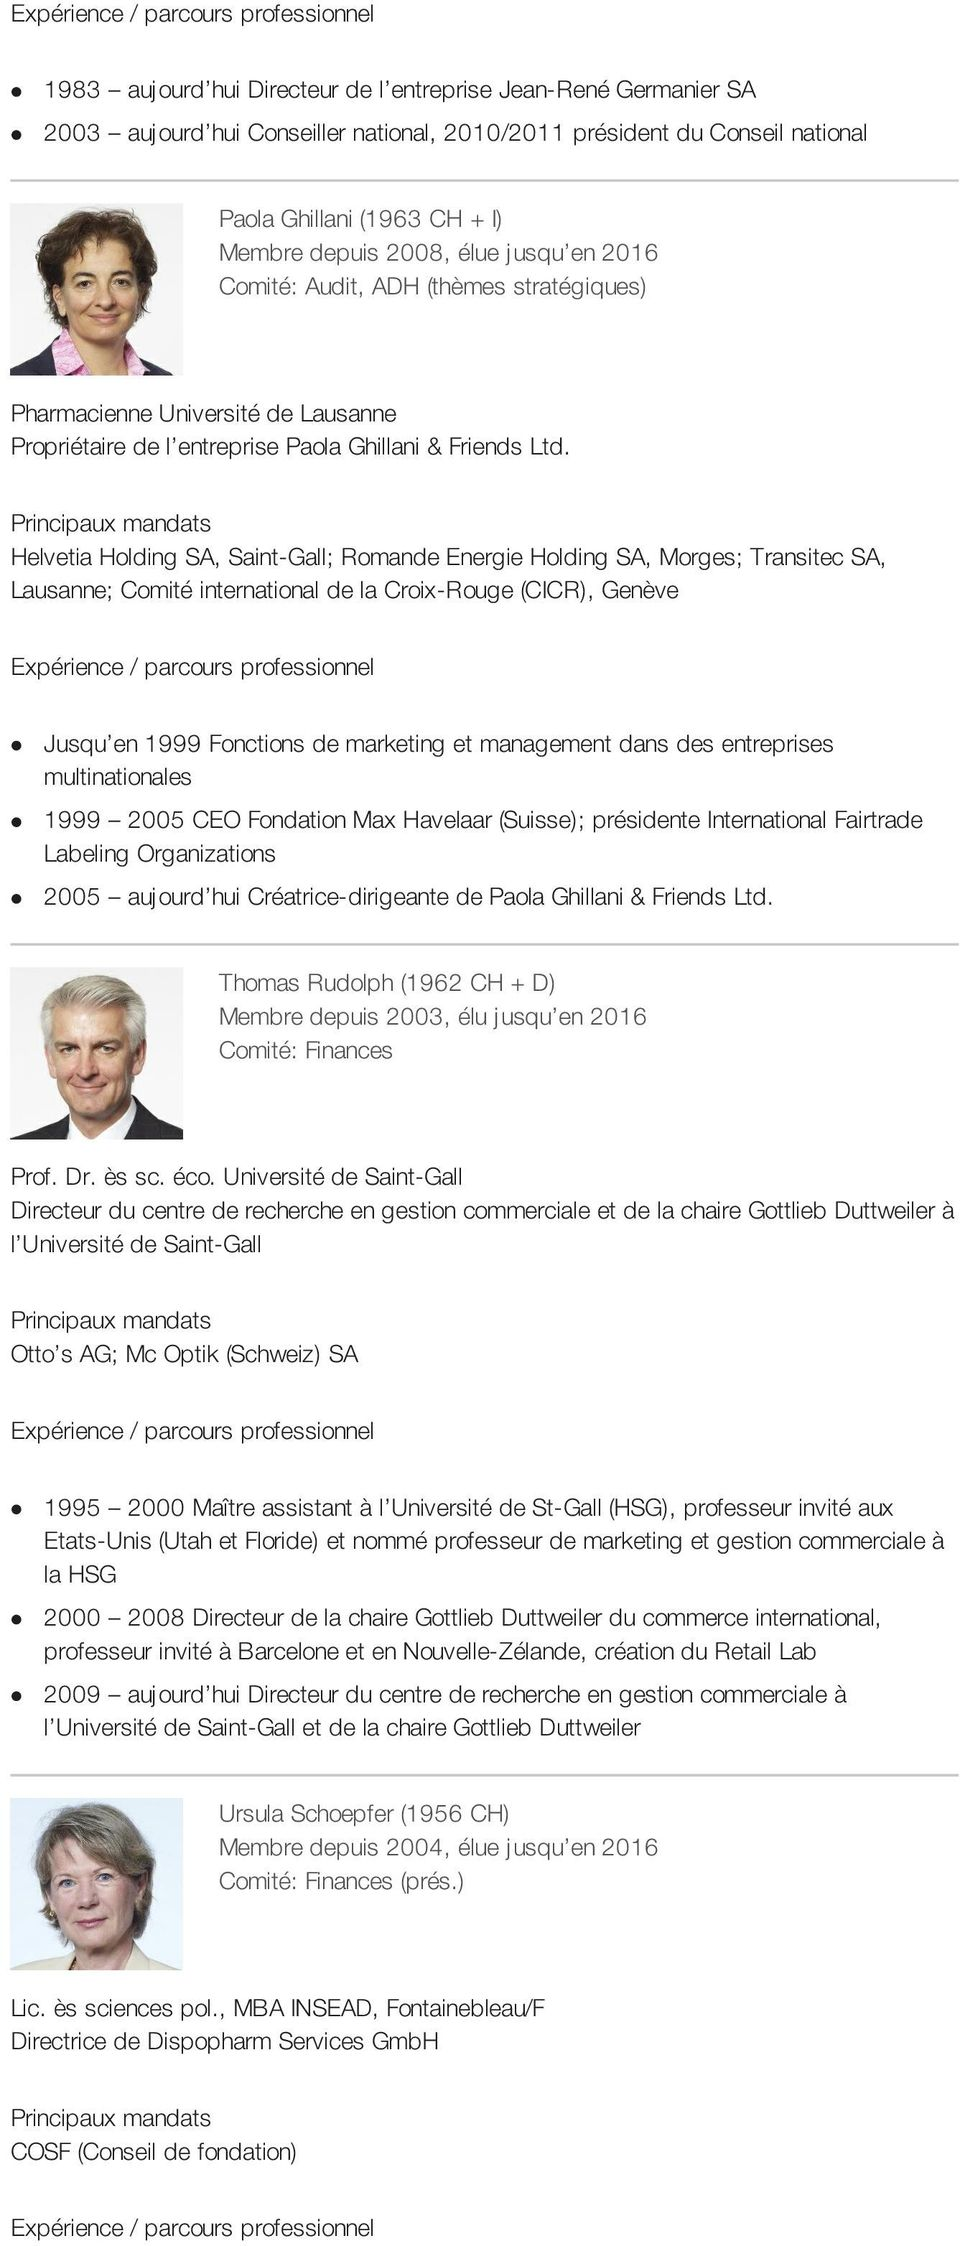 Helvetia Holding SA, Saint-Gall; Romande Energie Holding SA, Morges; Transitec SA, Lausanne; Comité international de la Croix-Rouge (CICR), Genève Jusqu en 1999 Fonctions de marketing et management